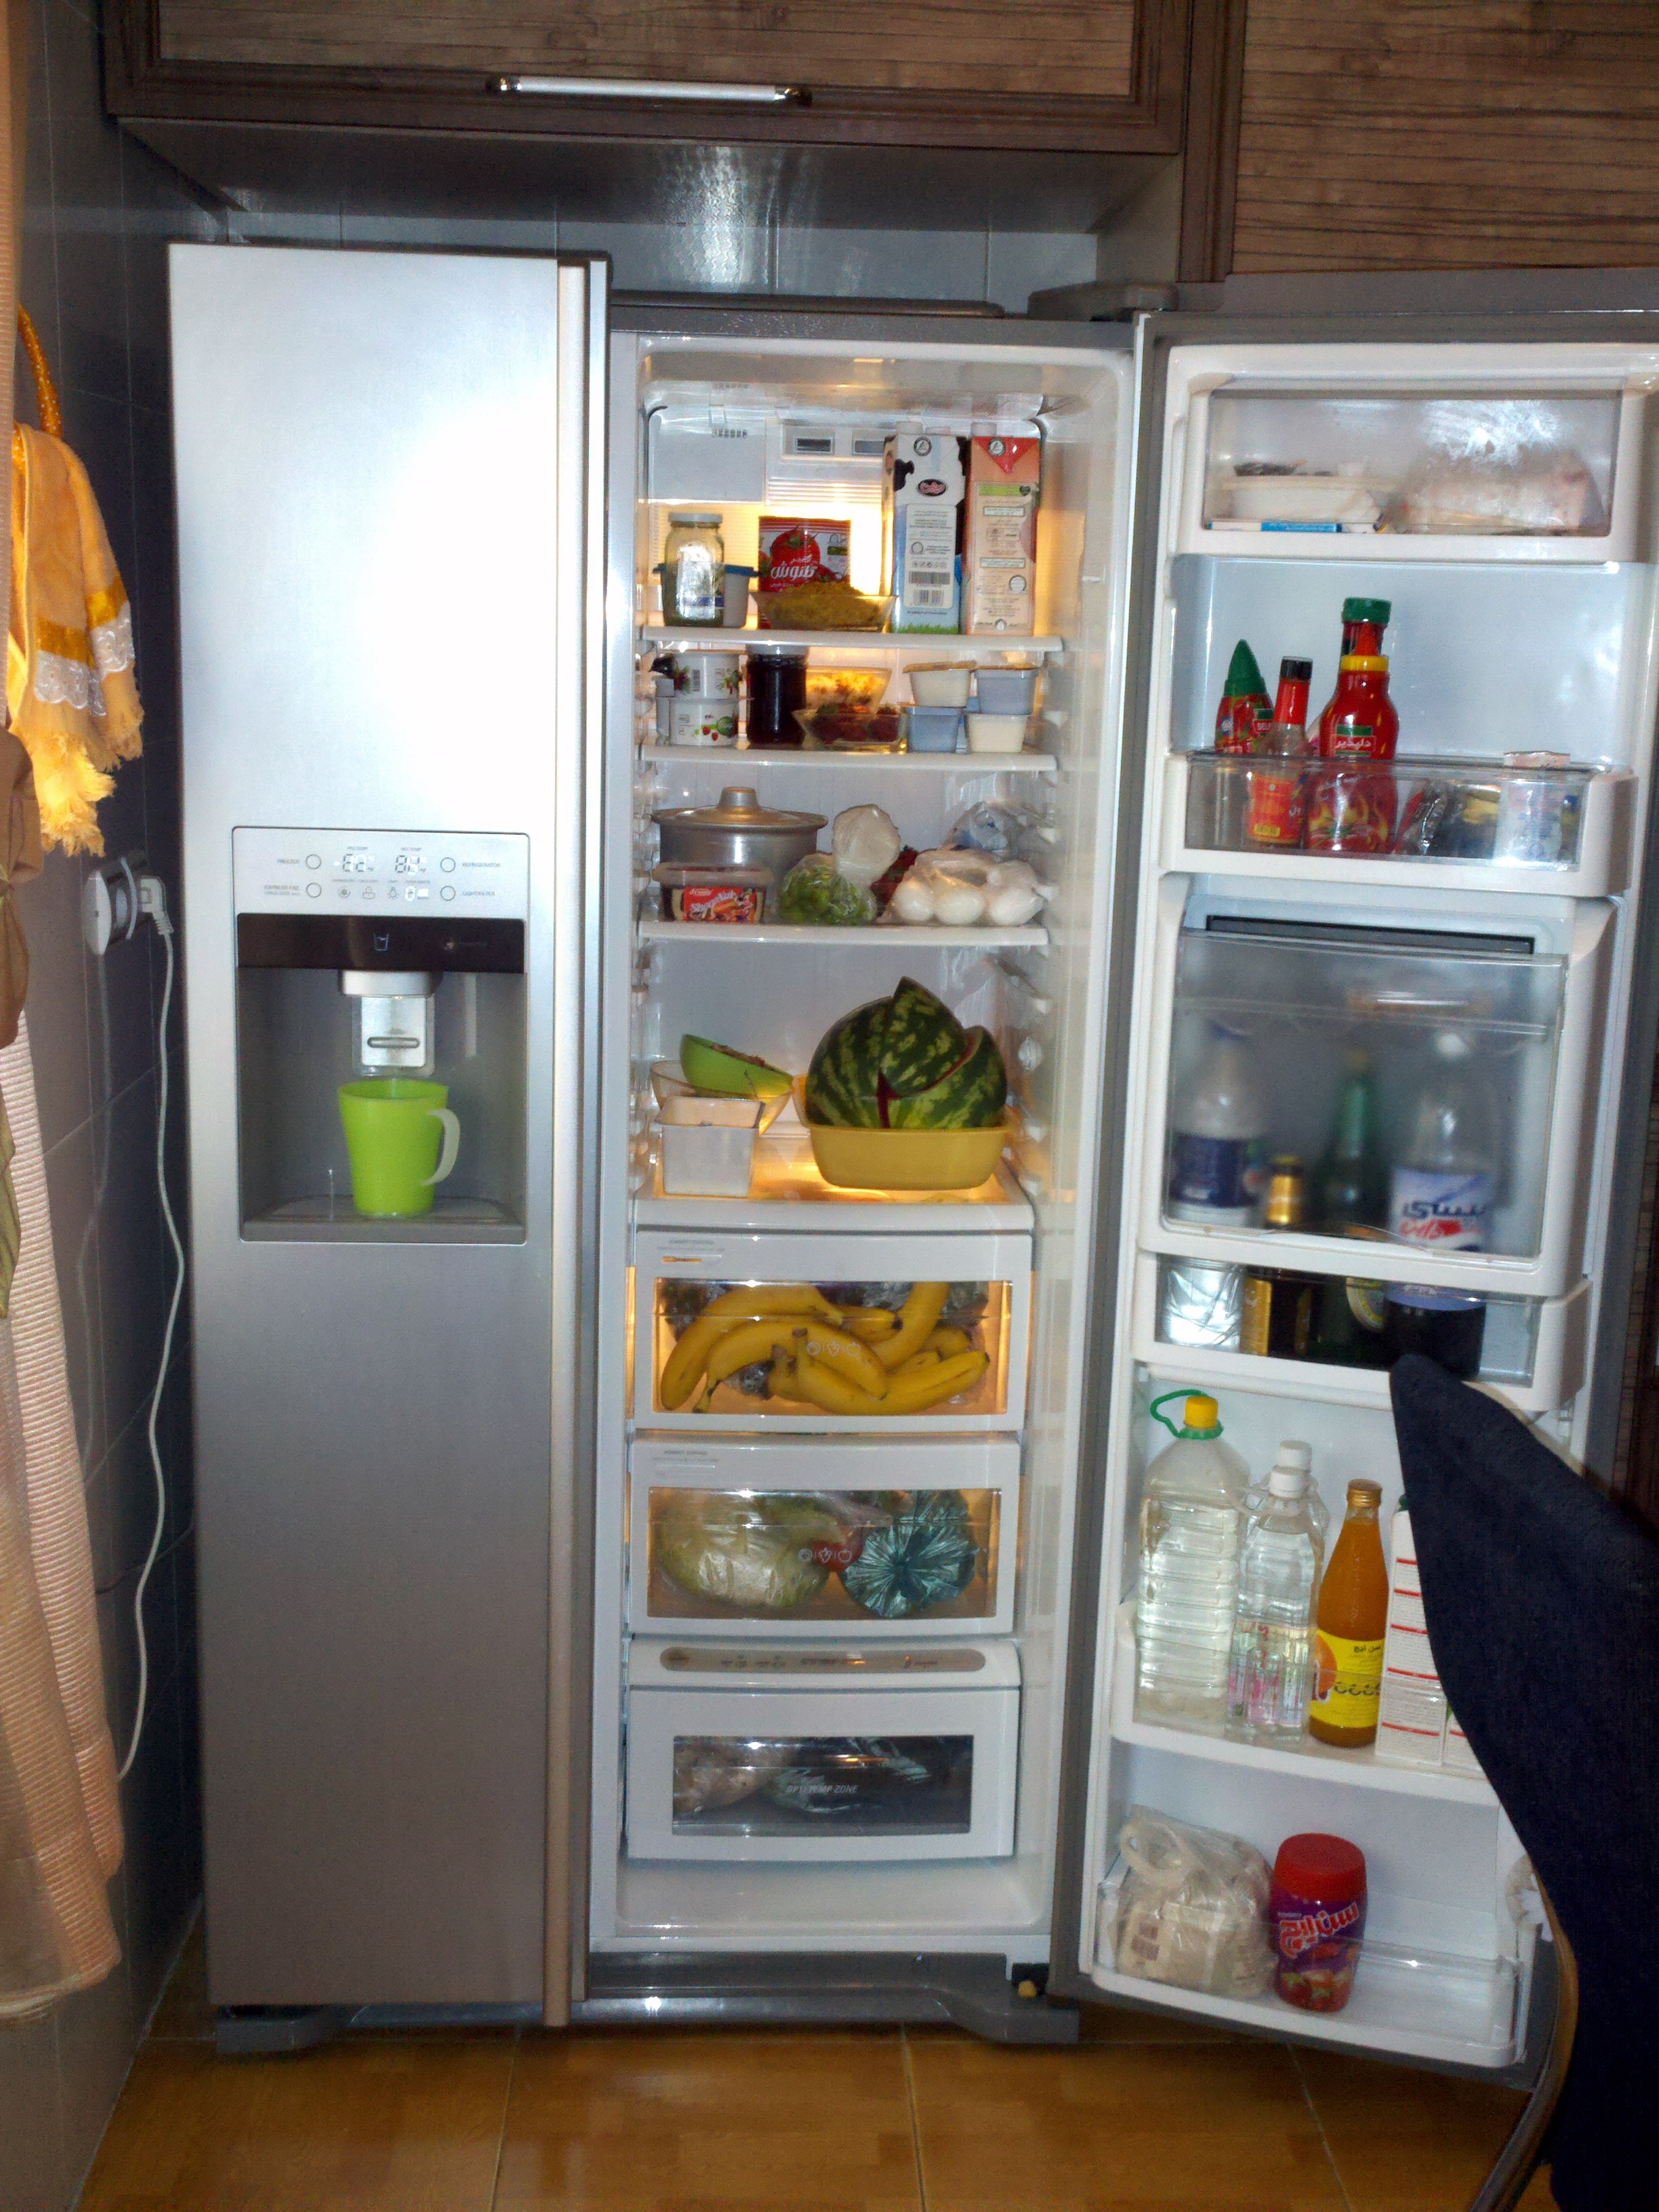 File Lg Refrigerator Interior Jpg Wikimedia Commons